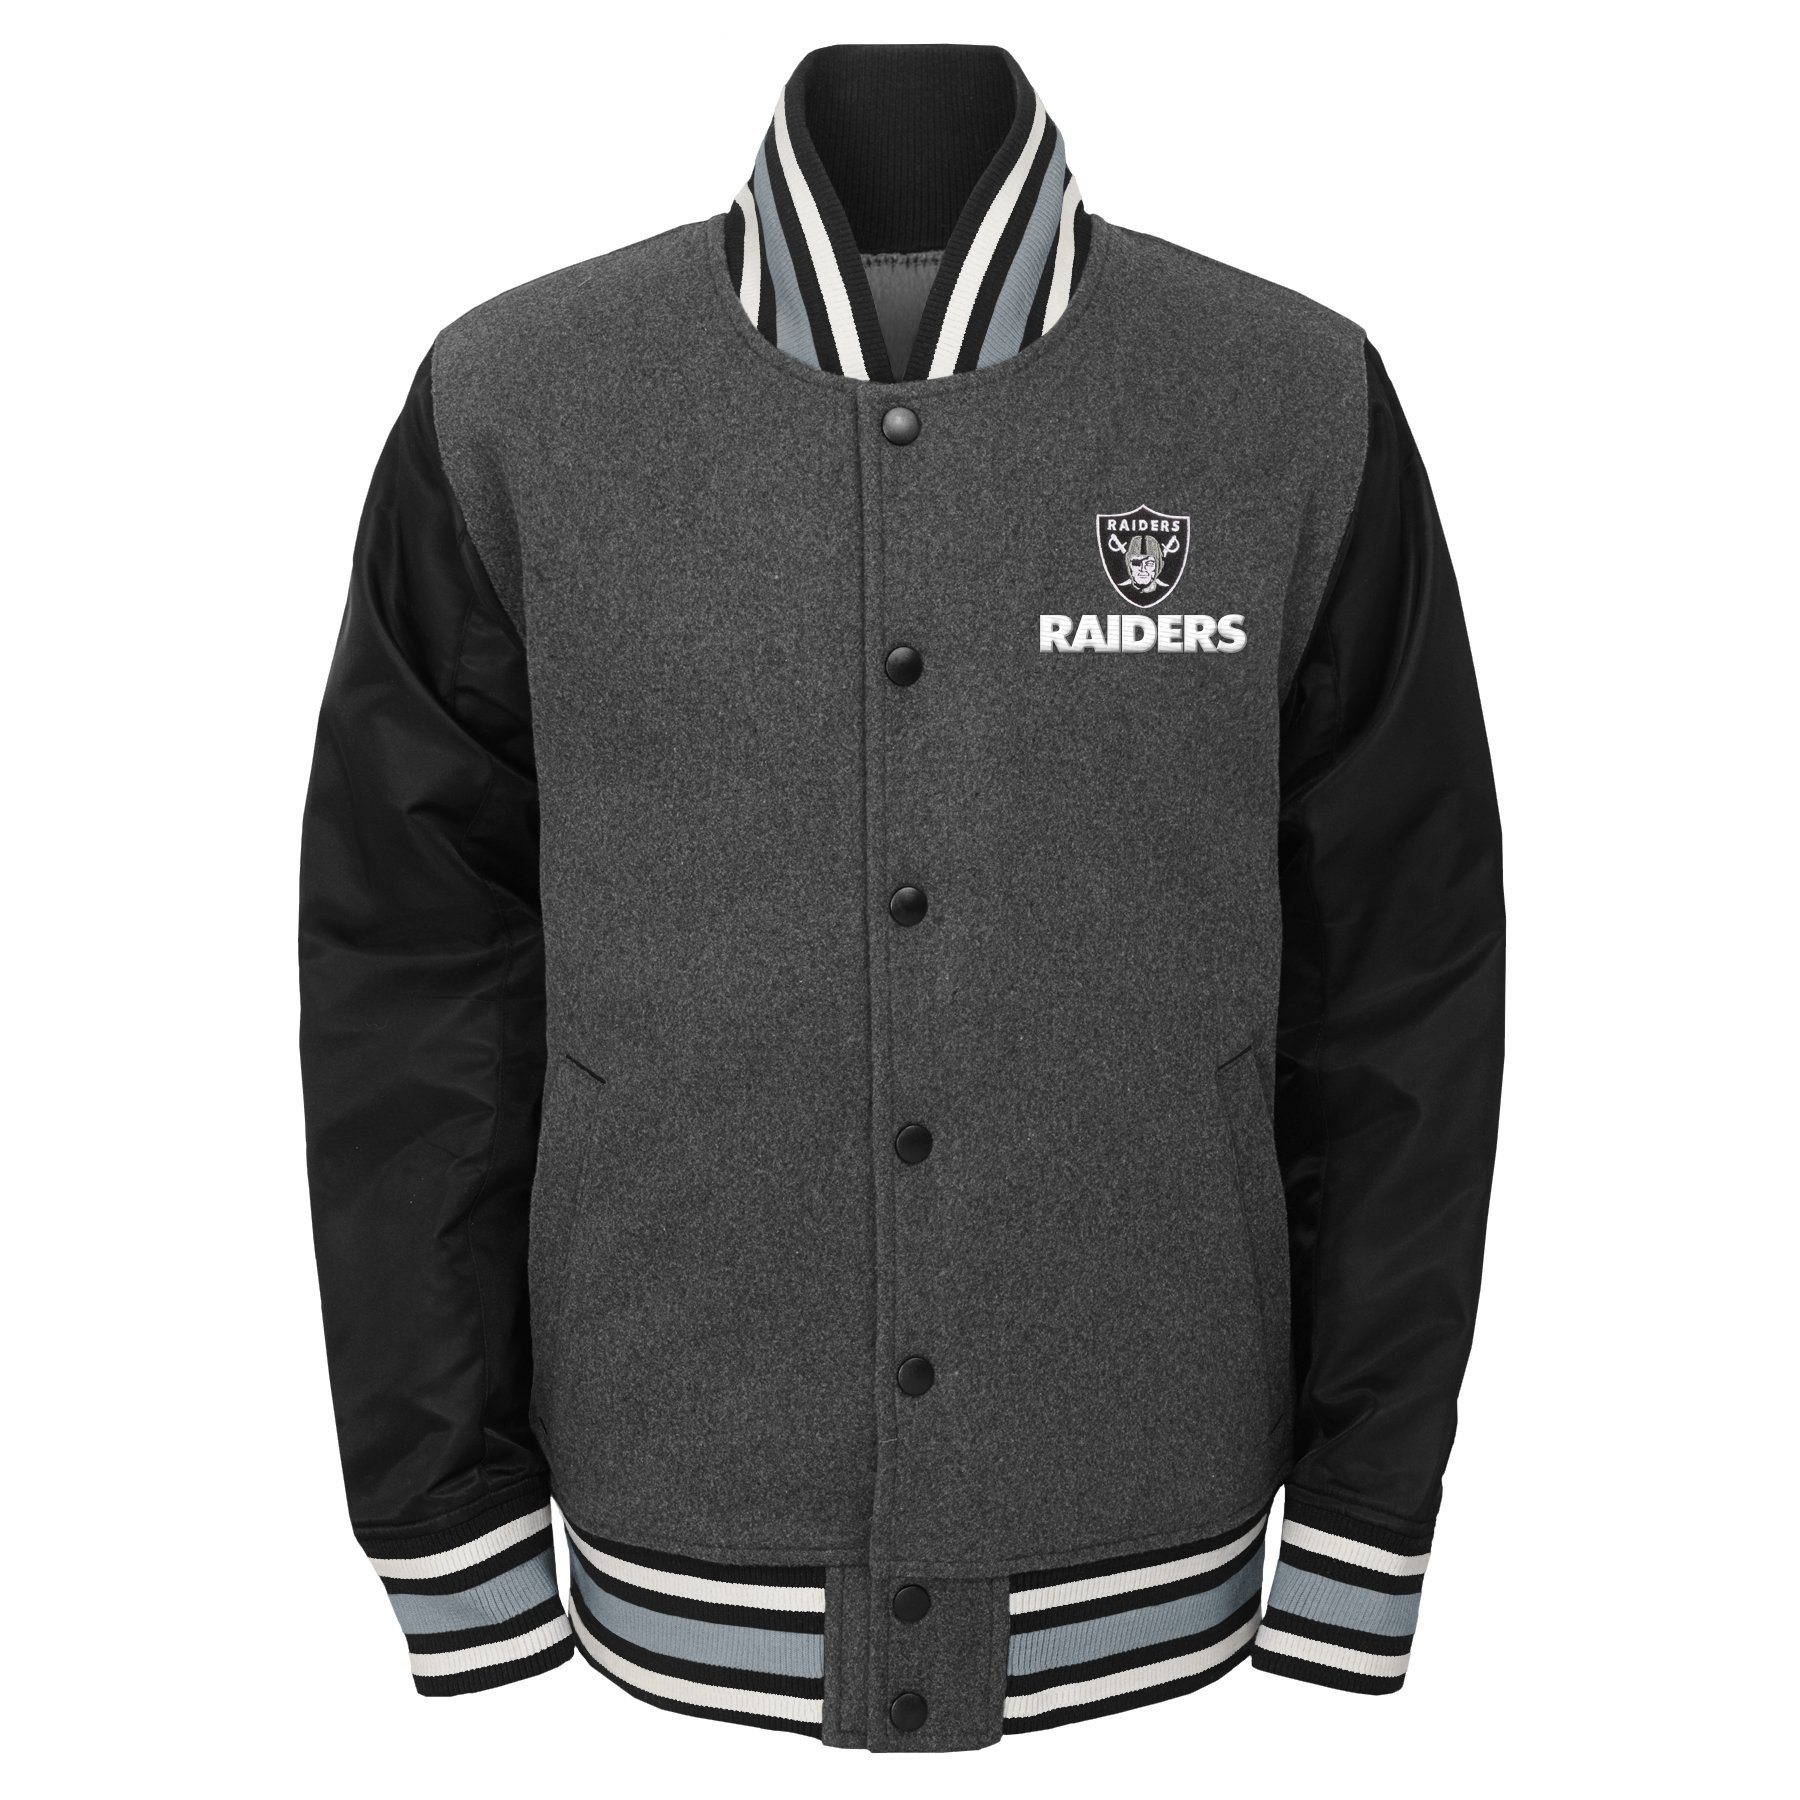 Outerstuff NFL Big Boys' Letterman Varsity Jacket, Charcoal Grey, Youth Large (14-16)